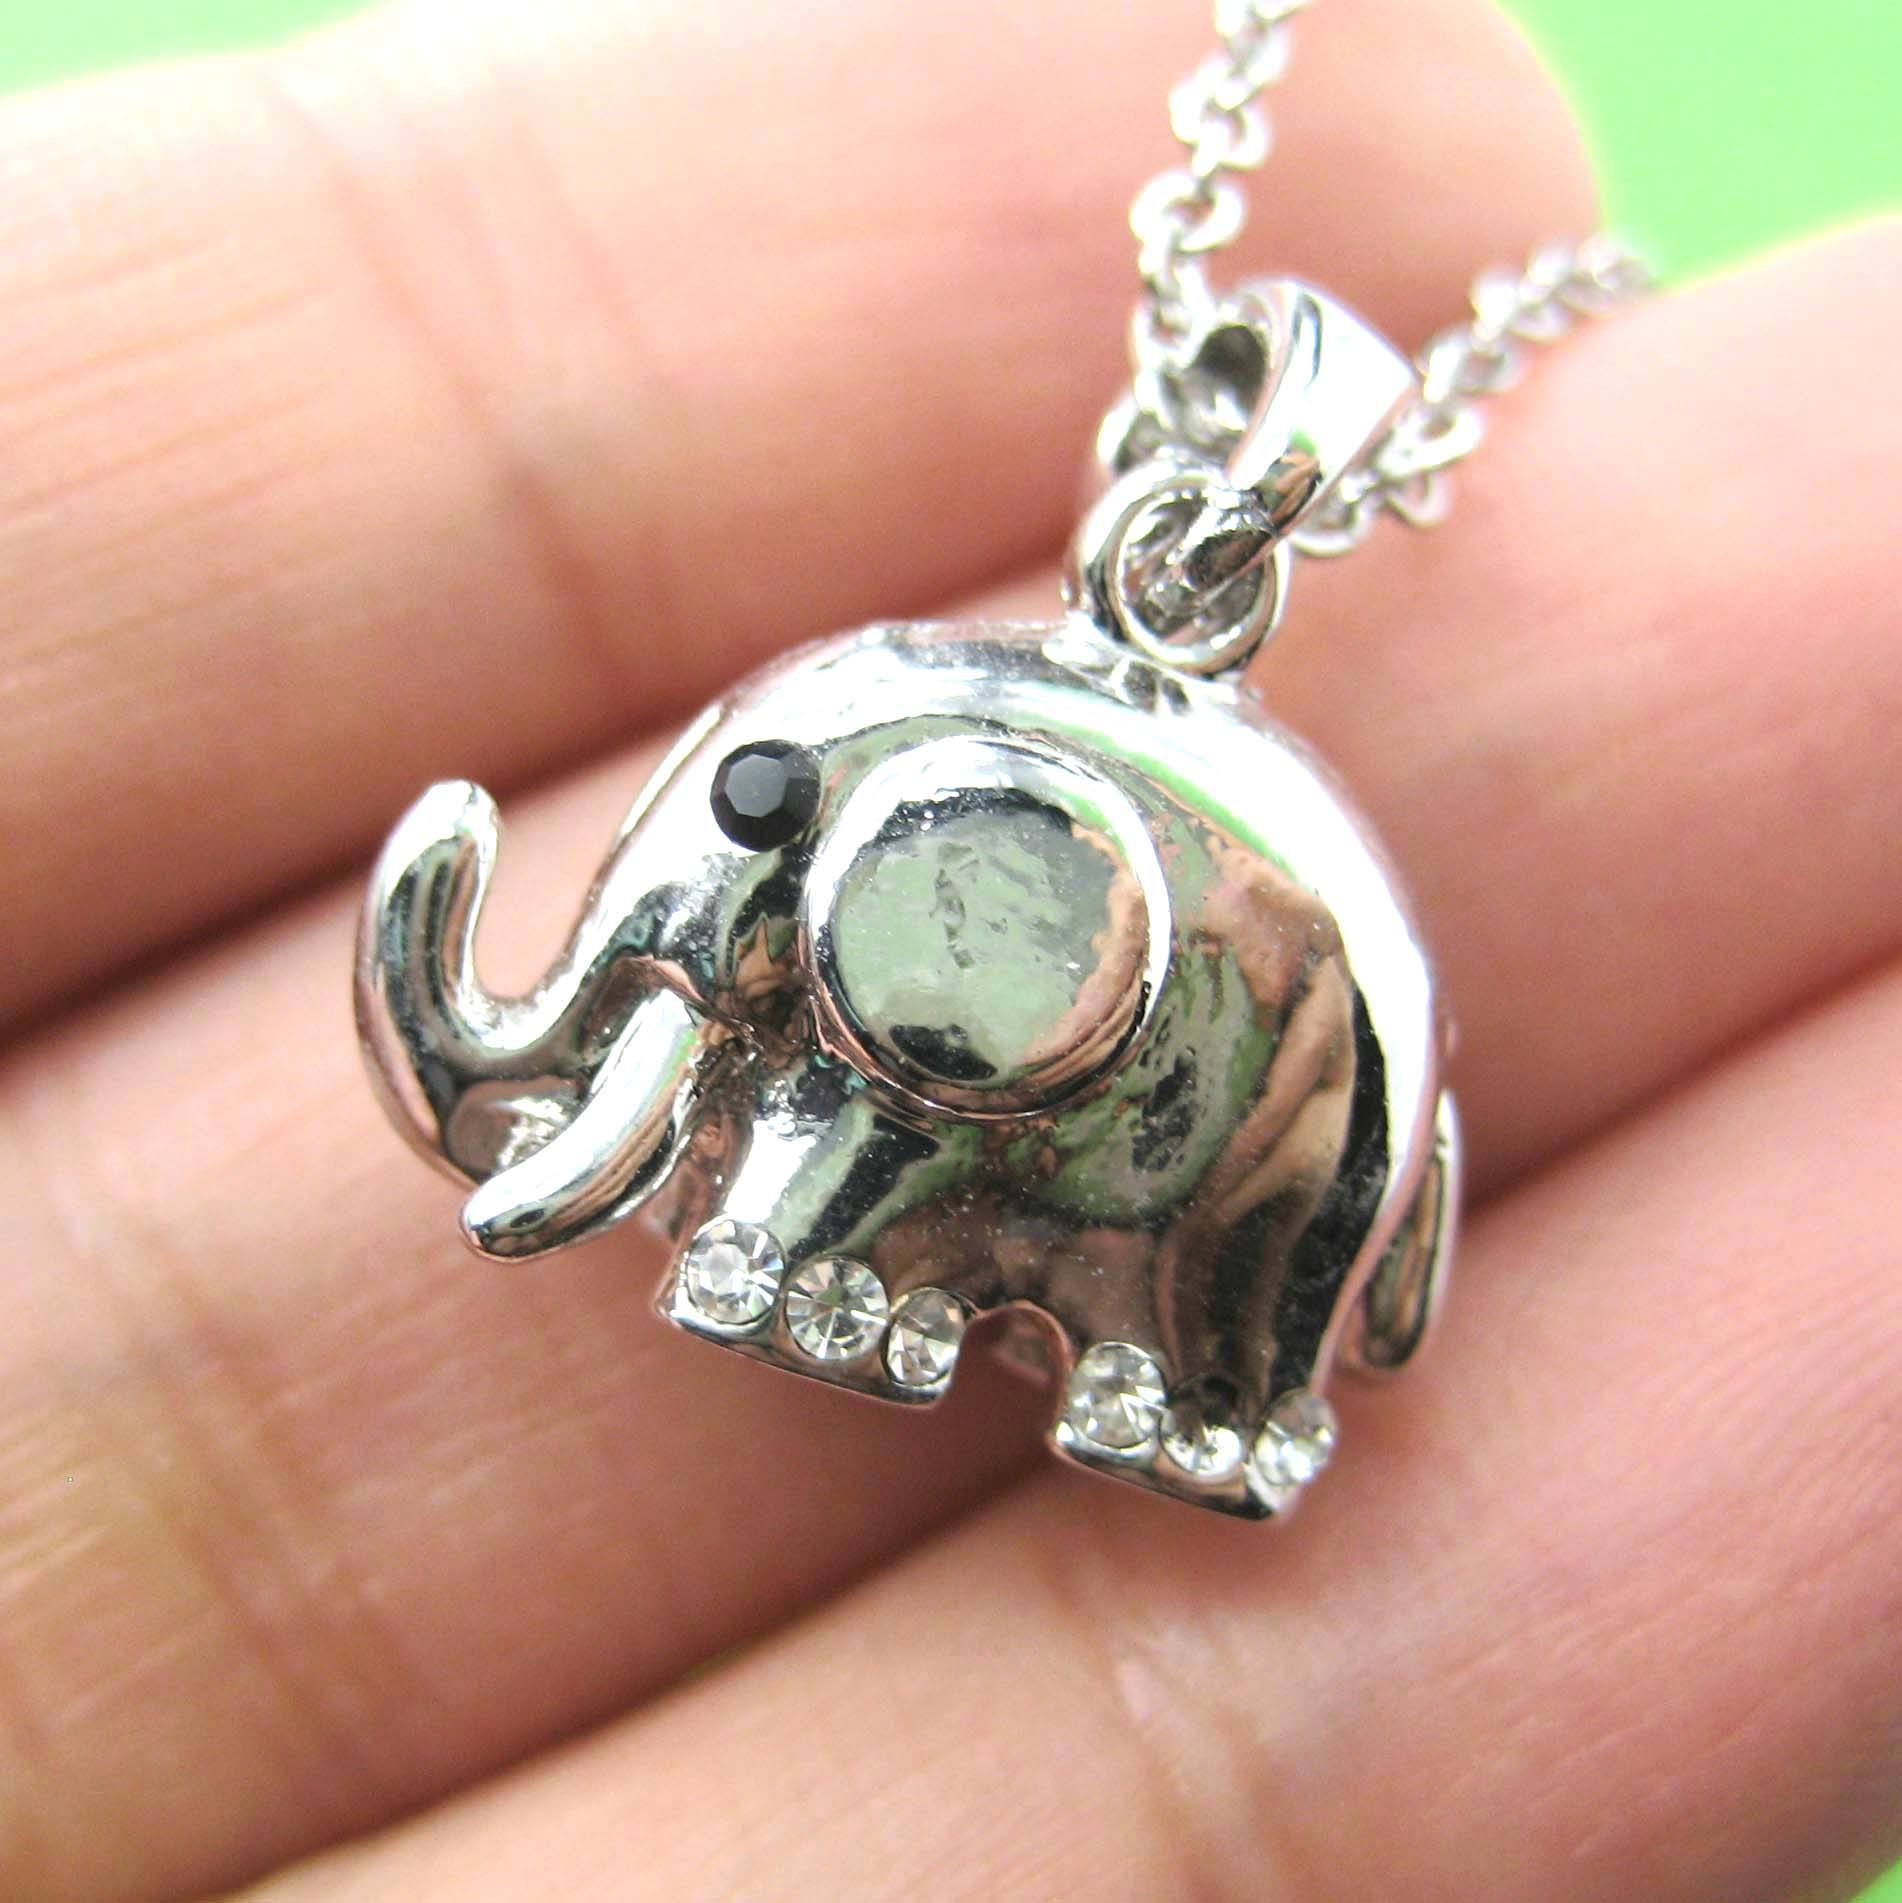 small-elephant-animal-charm-necklace-in-silver-animal-jewelry